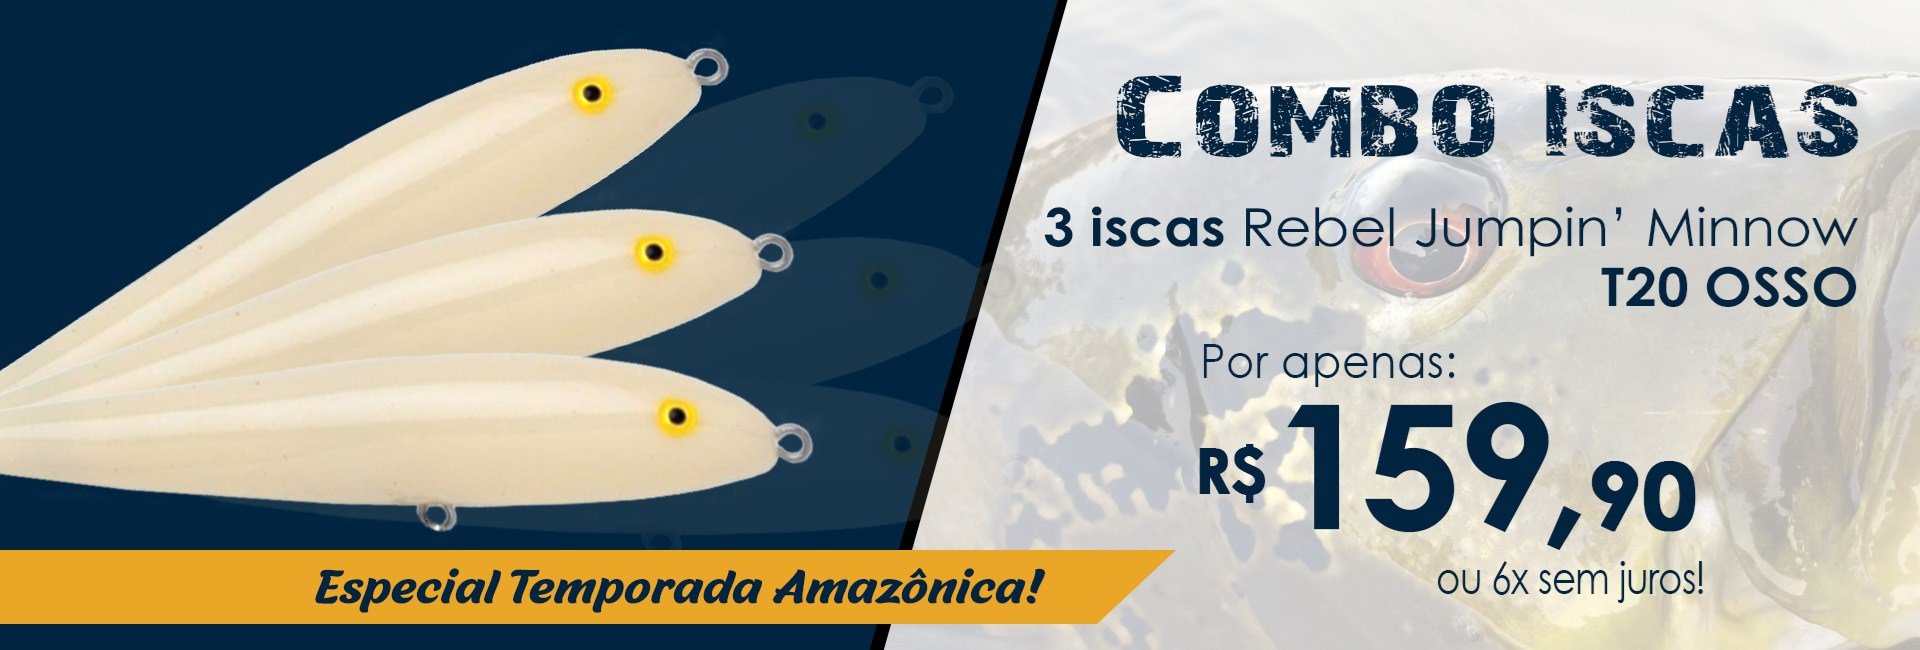 Combo c/ 3 Iscas Rebel Jumpin' Minnow T20